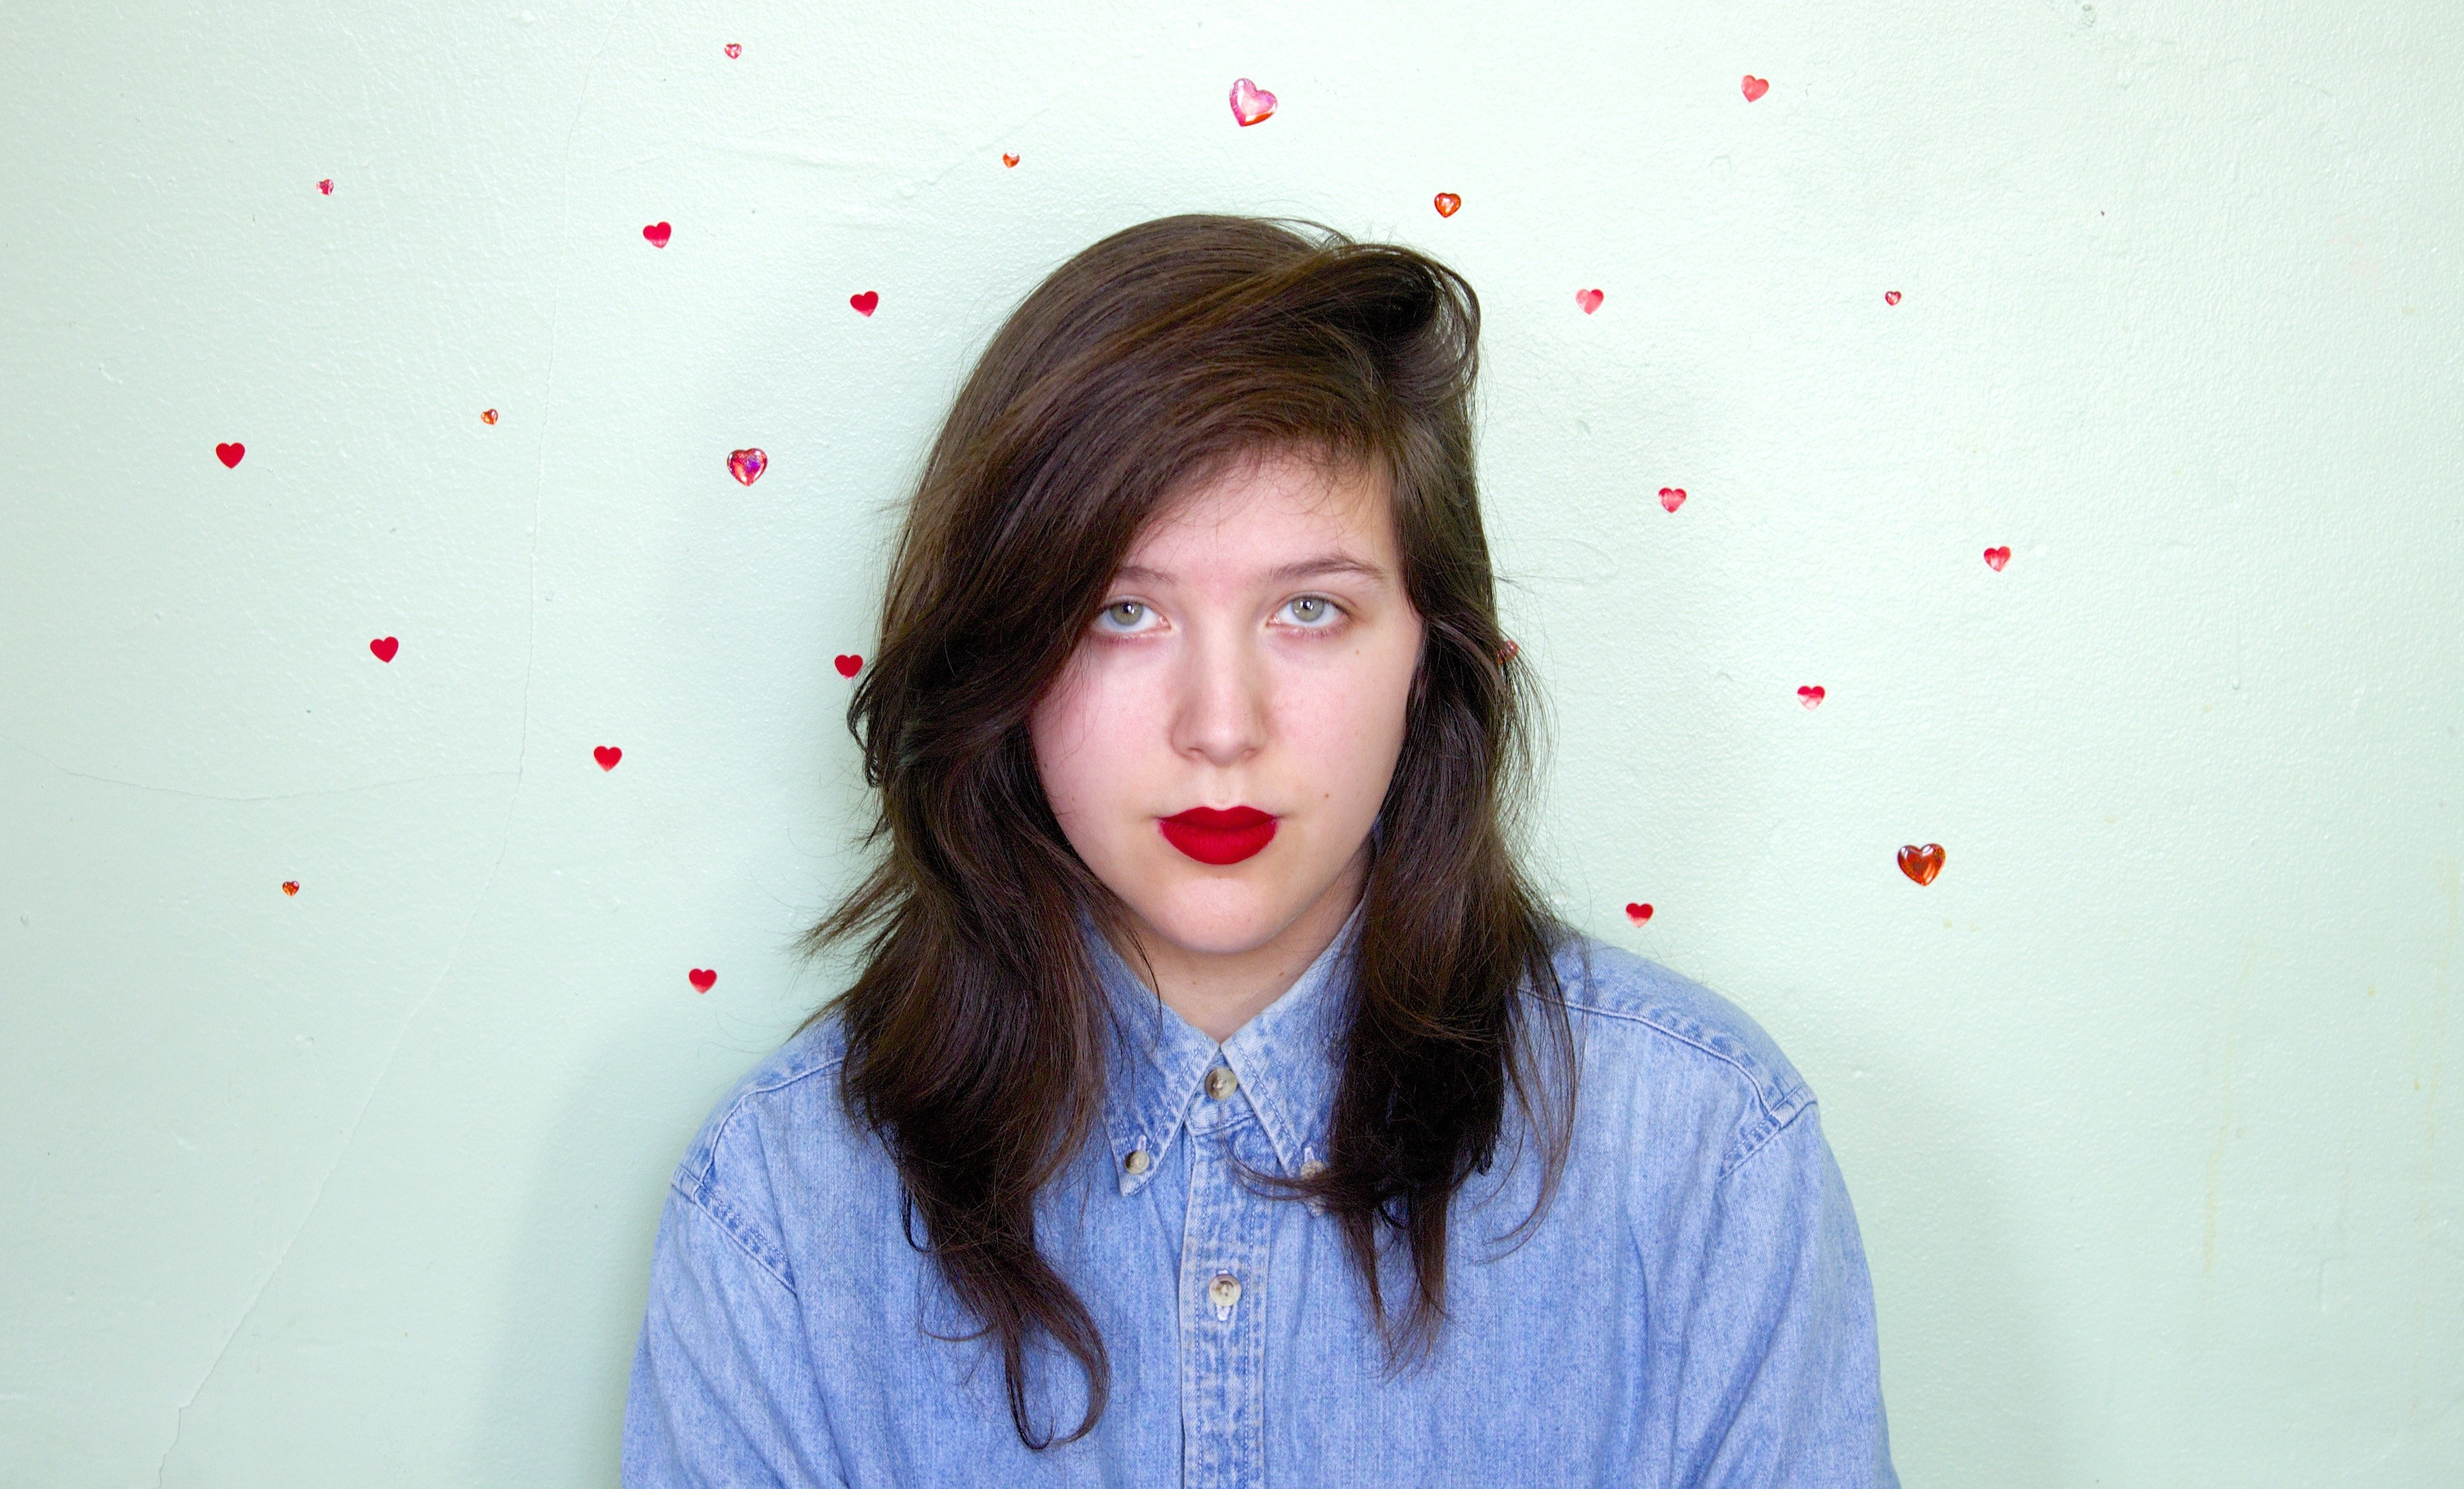 Who is American Singer Lucy Dacus Dating? Also get to know her Boyfriend, Career, Net Worth, and Wiki-Bio!